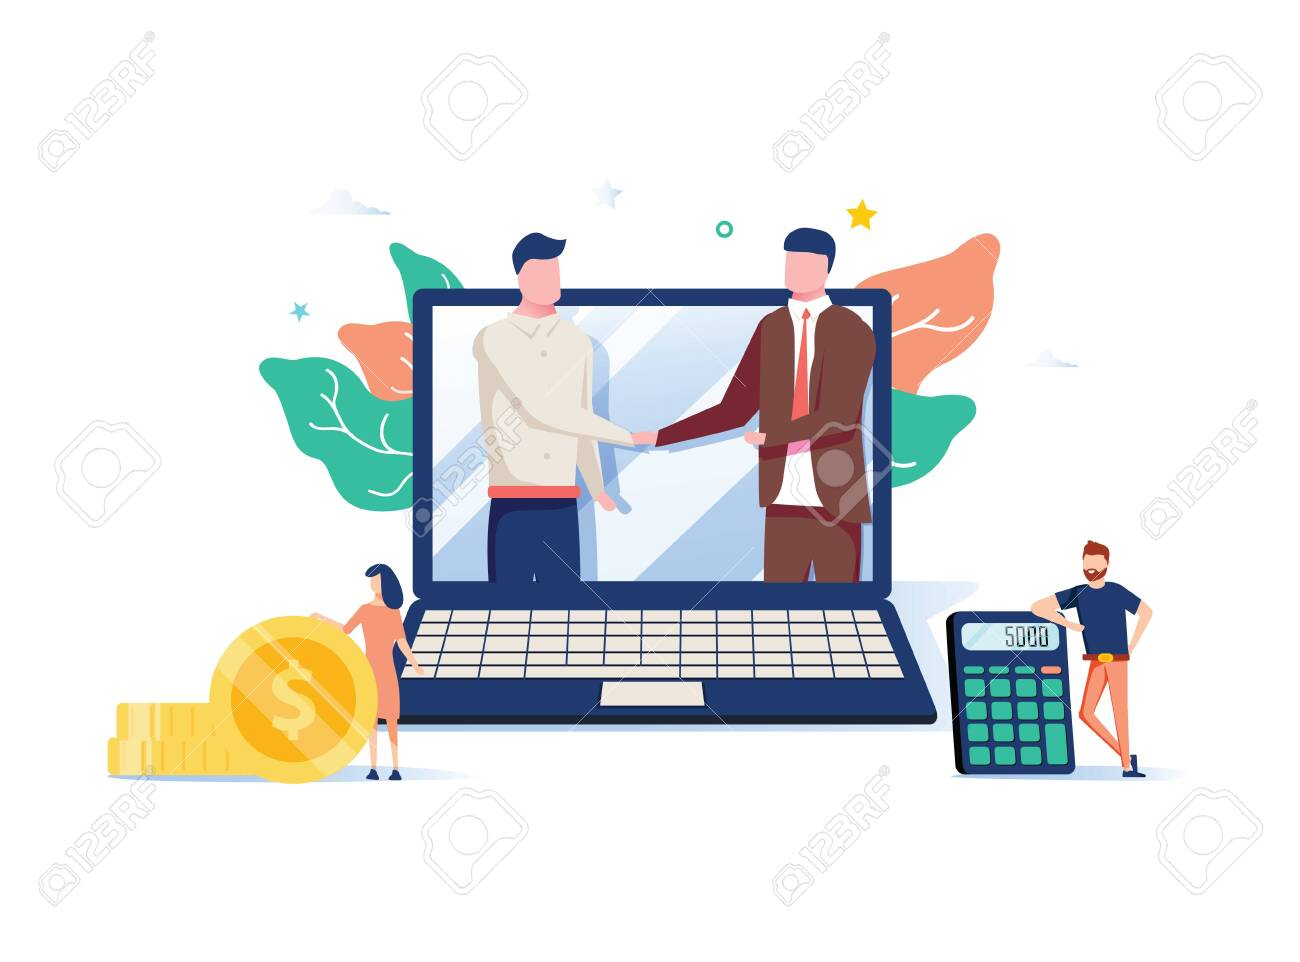 Two business partners shaking hands in big laptop. Online business, Partnership and agreement, with small employ around - 132173188